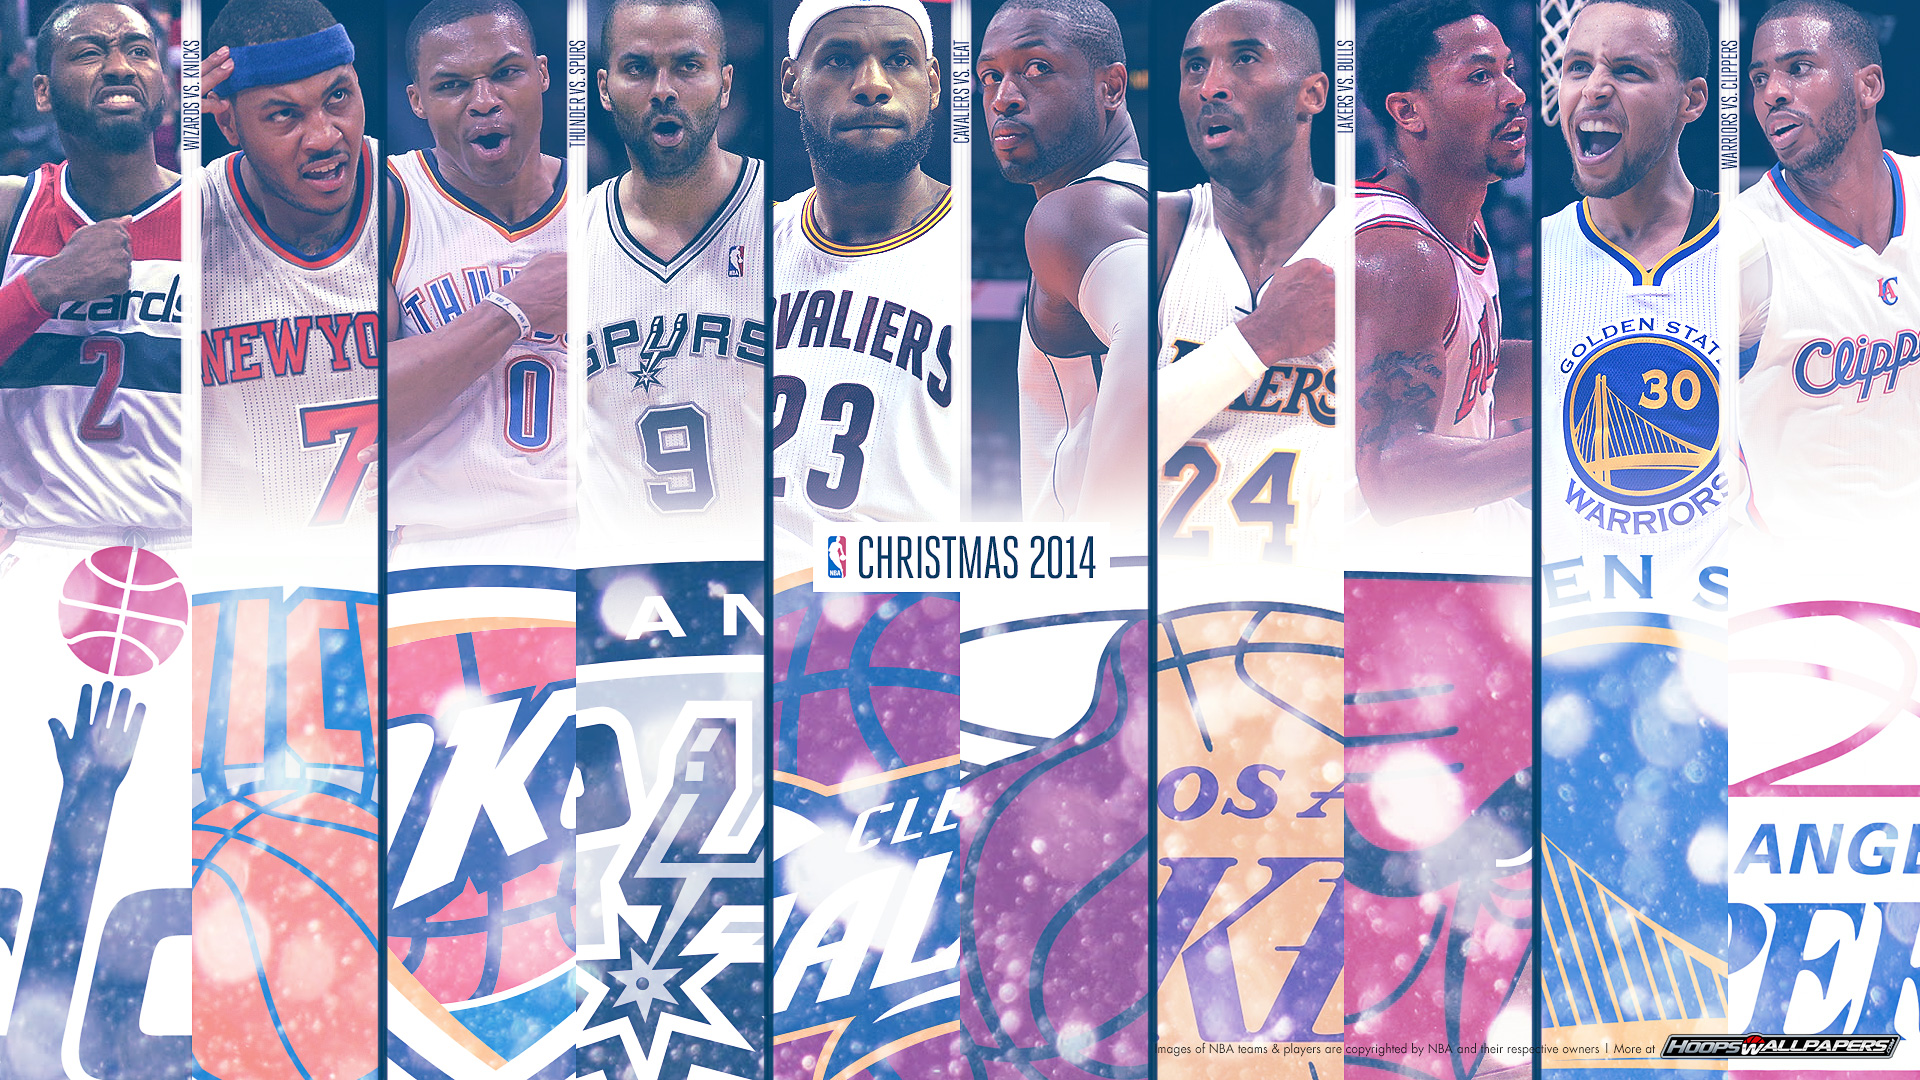 Hd wallpaper nba - Nba Wallpaper